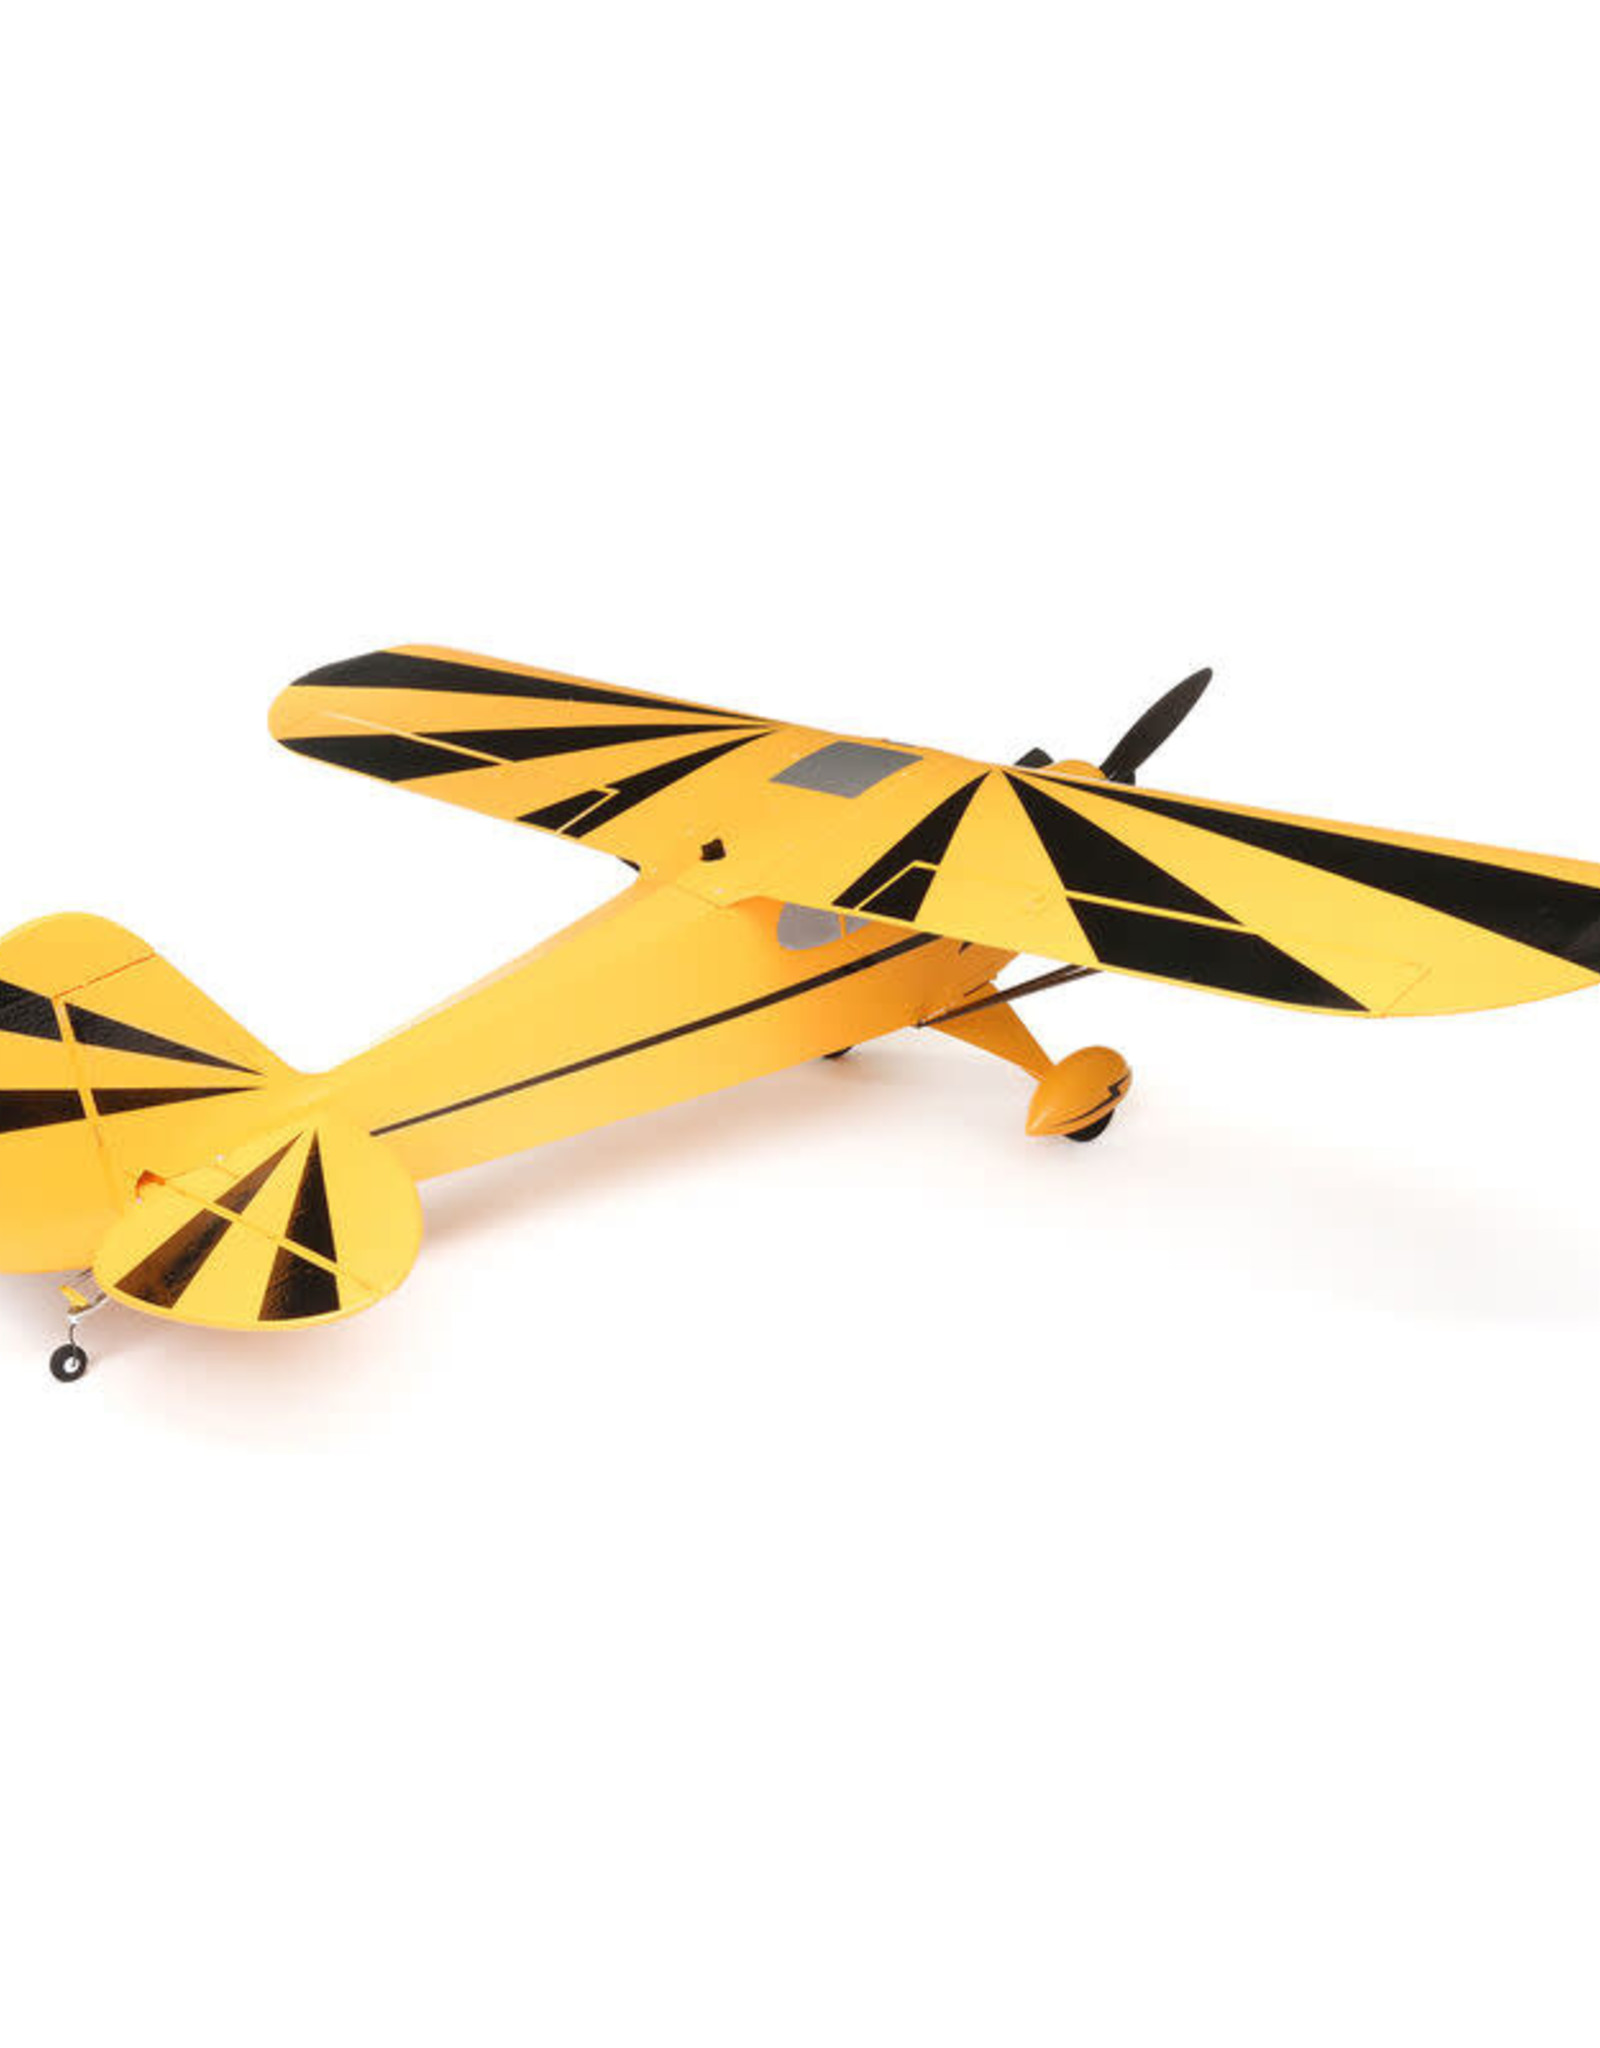 EFL EFL5150 Clipped Wing Cub 1.2m BNF Basic with AS3X and SAFE Select